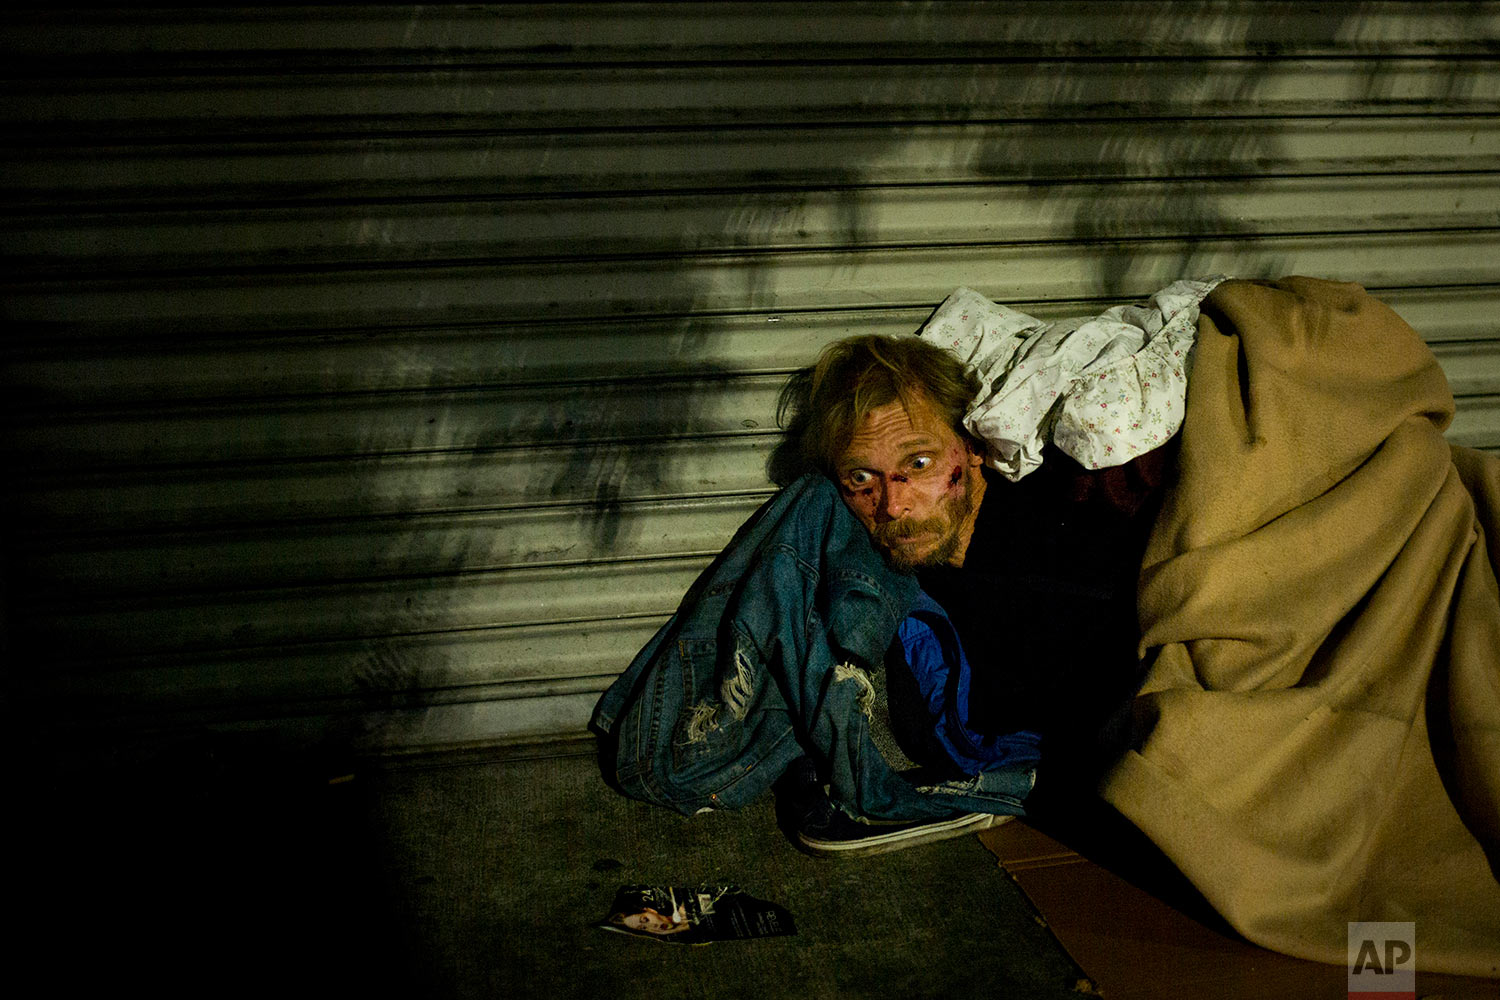 Bearing cuts all over his face, a homeless drug addict, who said his name is April Jane, aimlessly stares into space on a sidewalk in the Skid Row area of downtown Los Angeles, Thursday, Nov. 2, 2017. (AP Photo/Jae C. Hong)